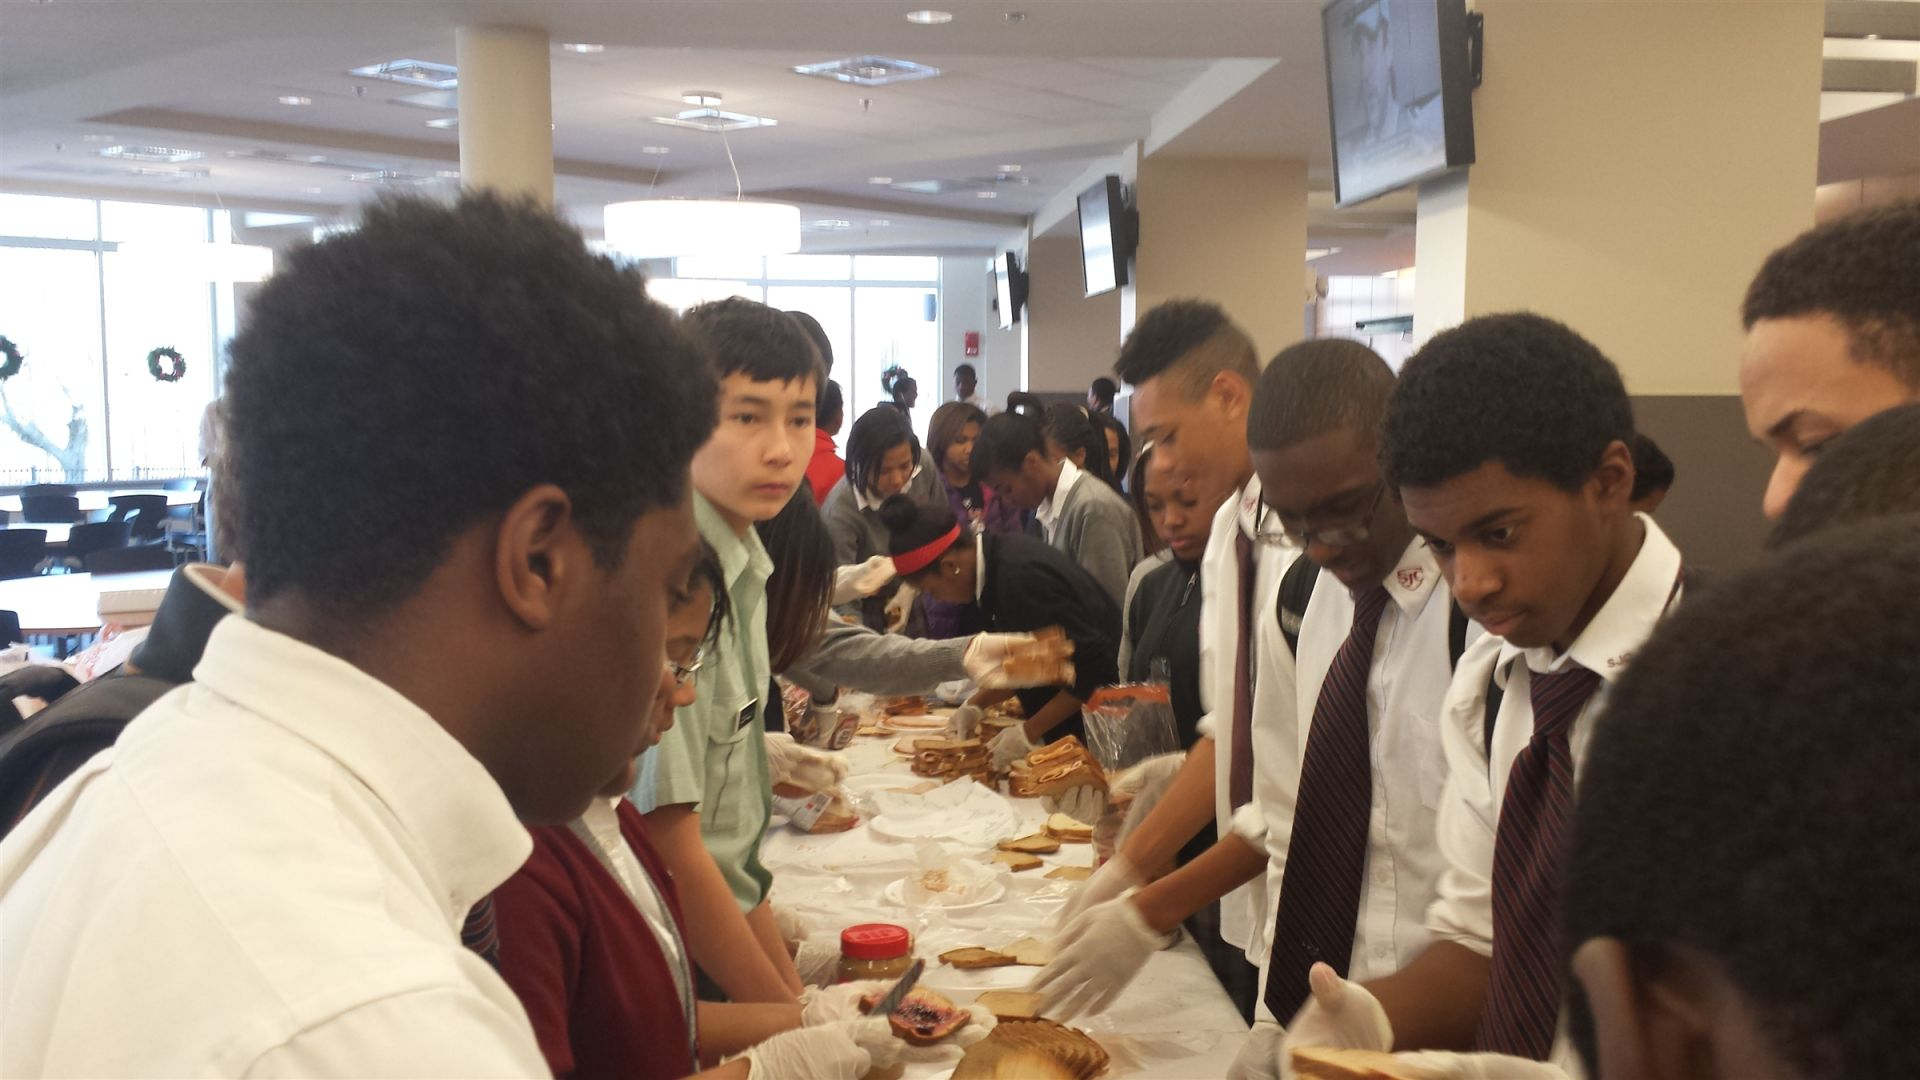 Track team making sandwiches for Martha's Table